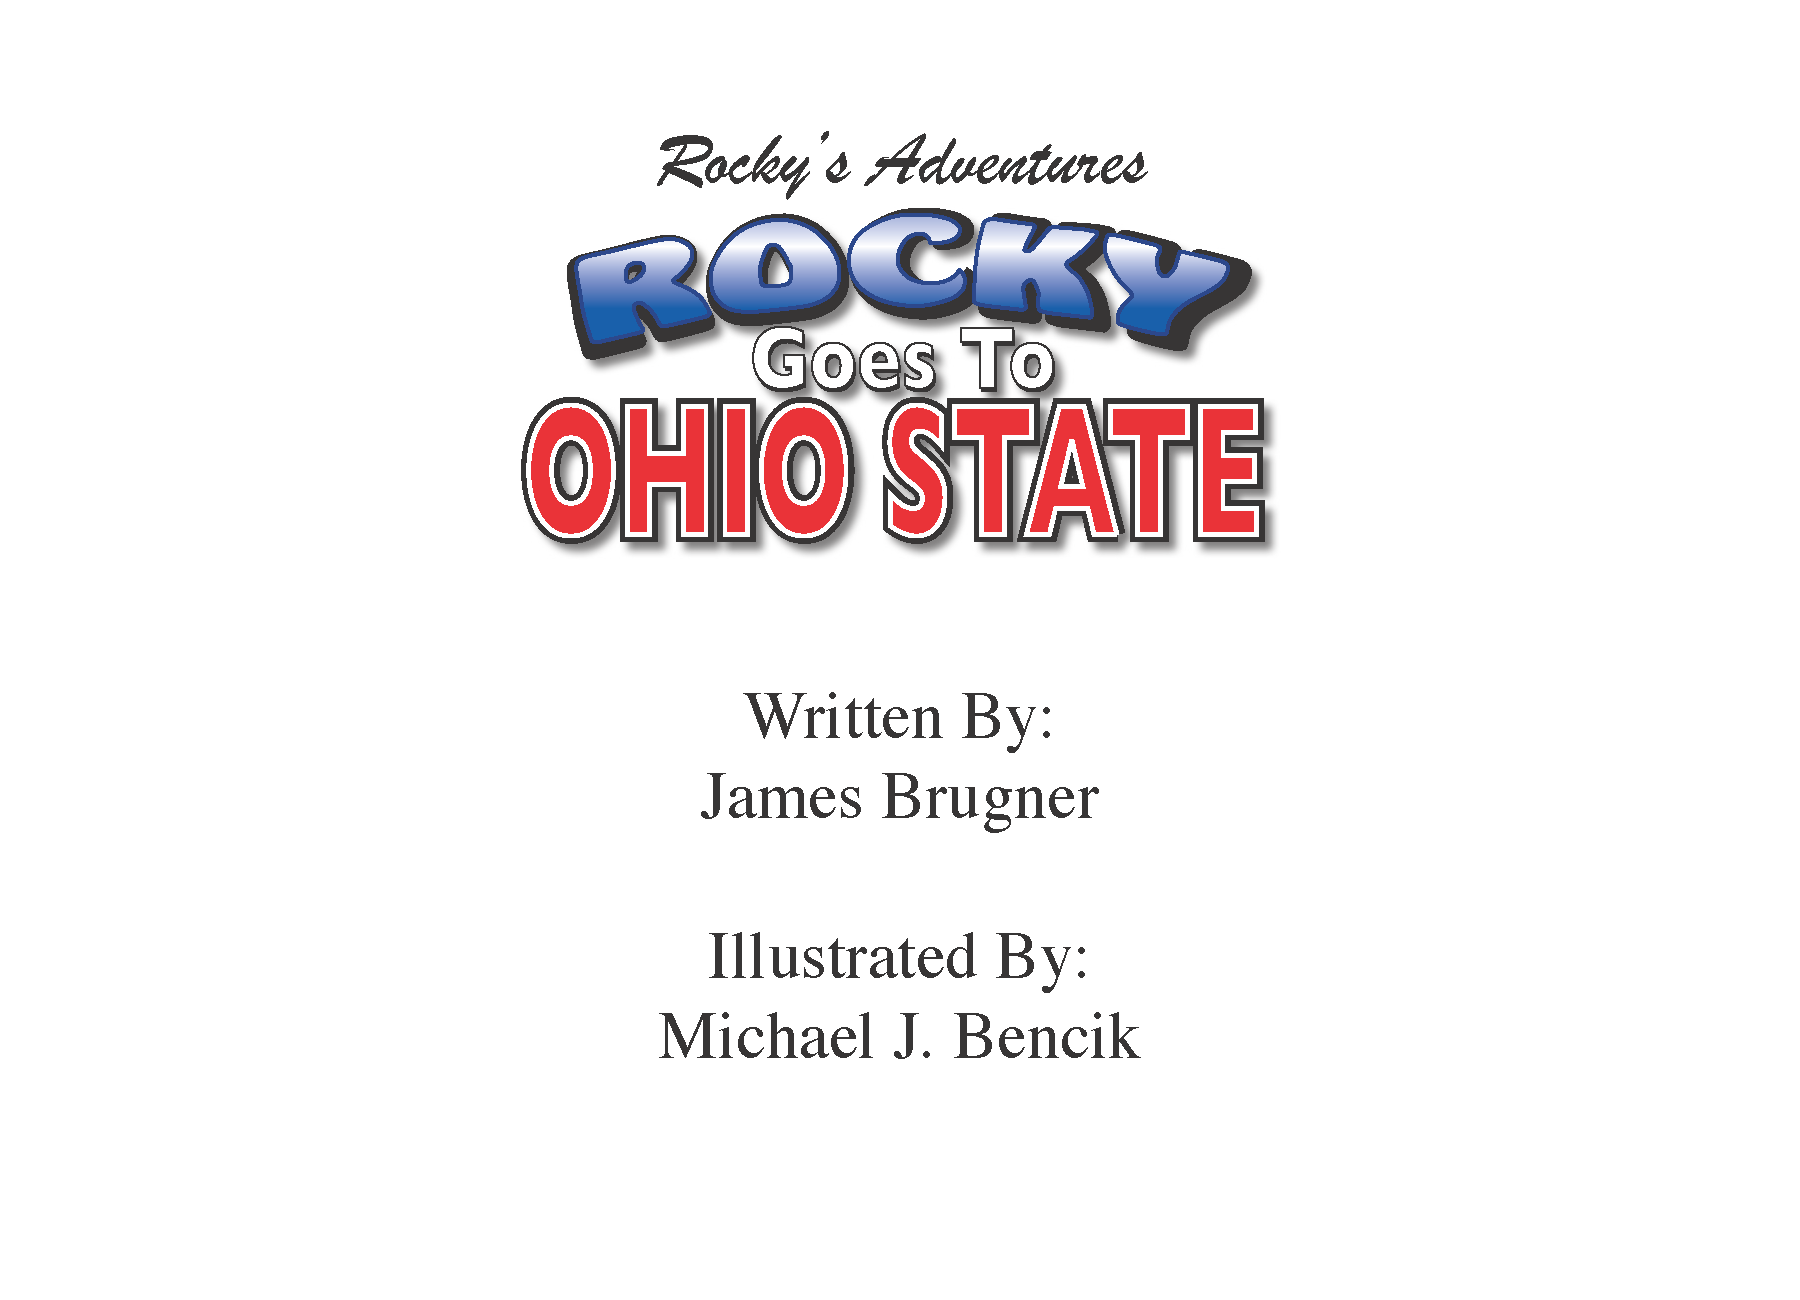 Rockys OSU adventures3_Page_03W.png